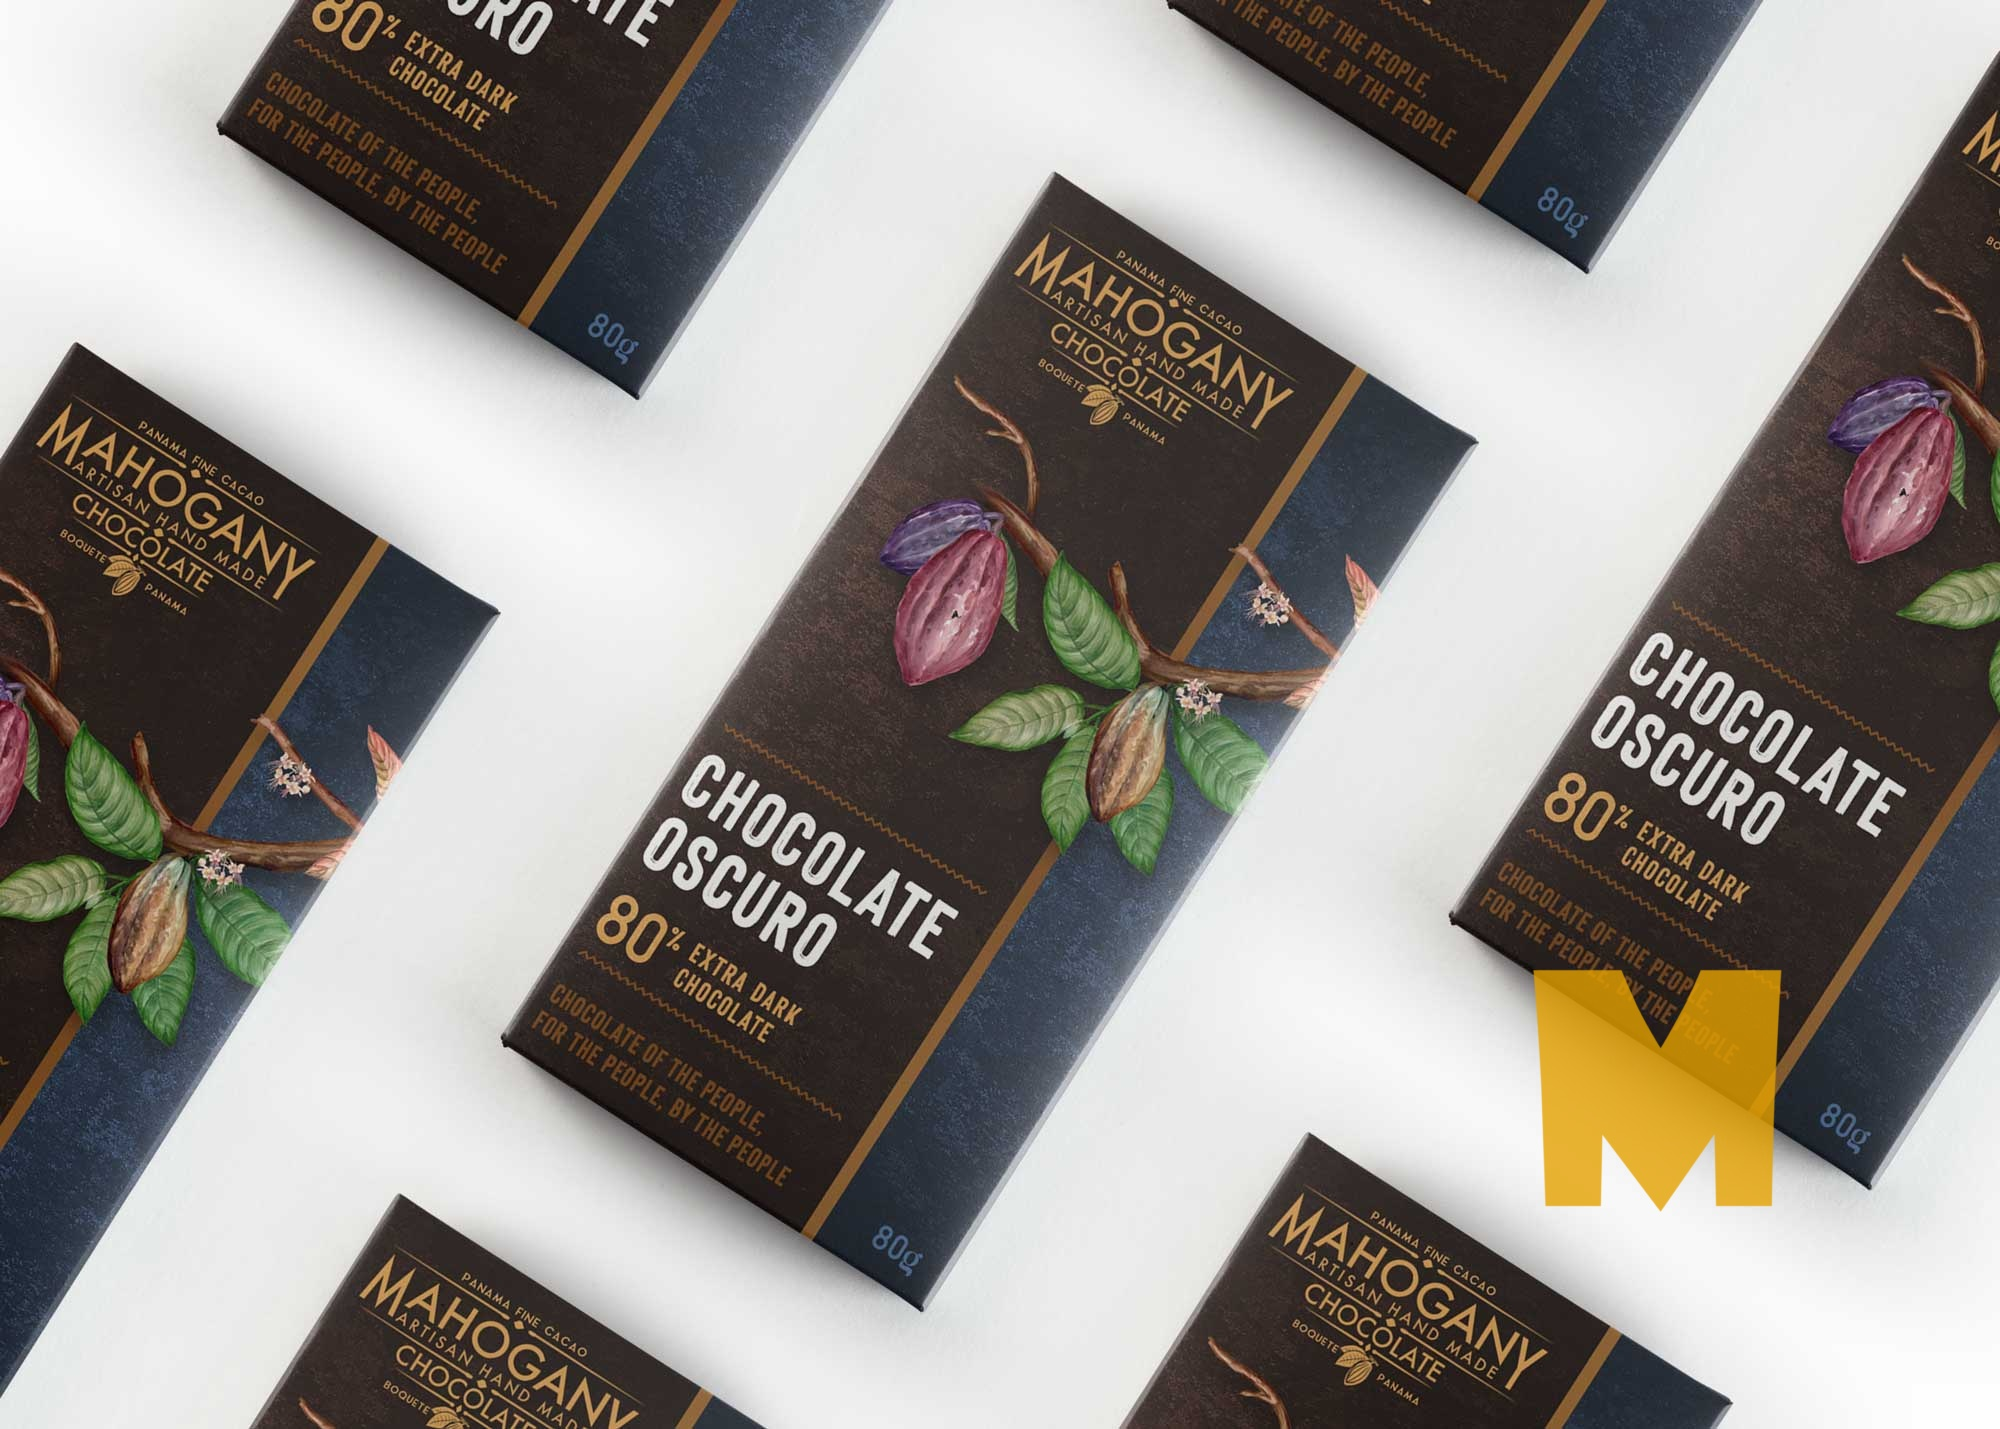 Dark Chocolate Packaging Scene Mockup